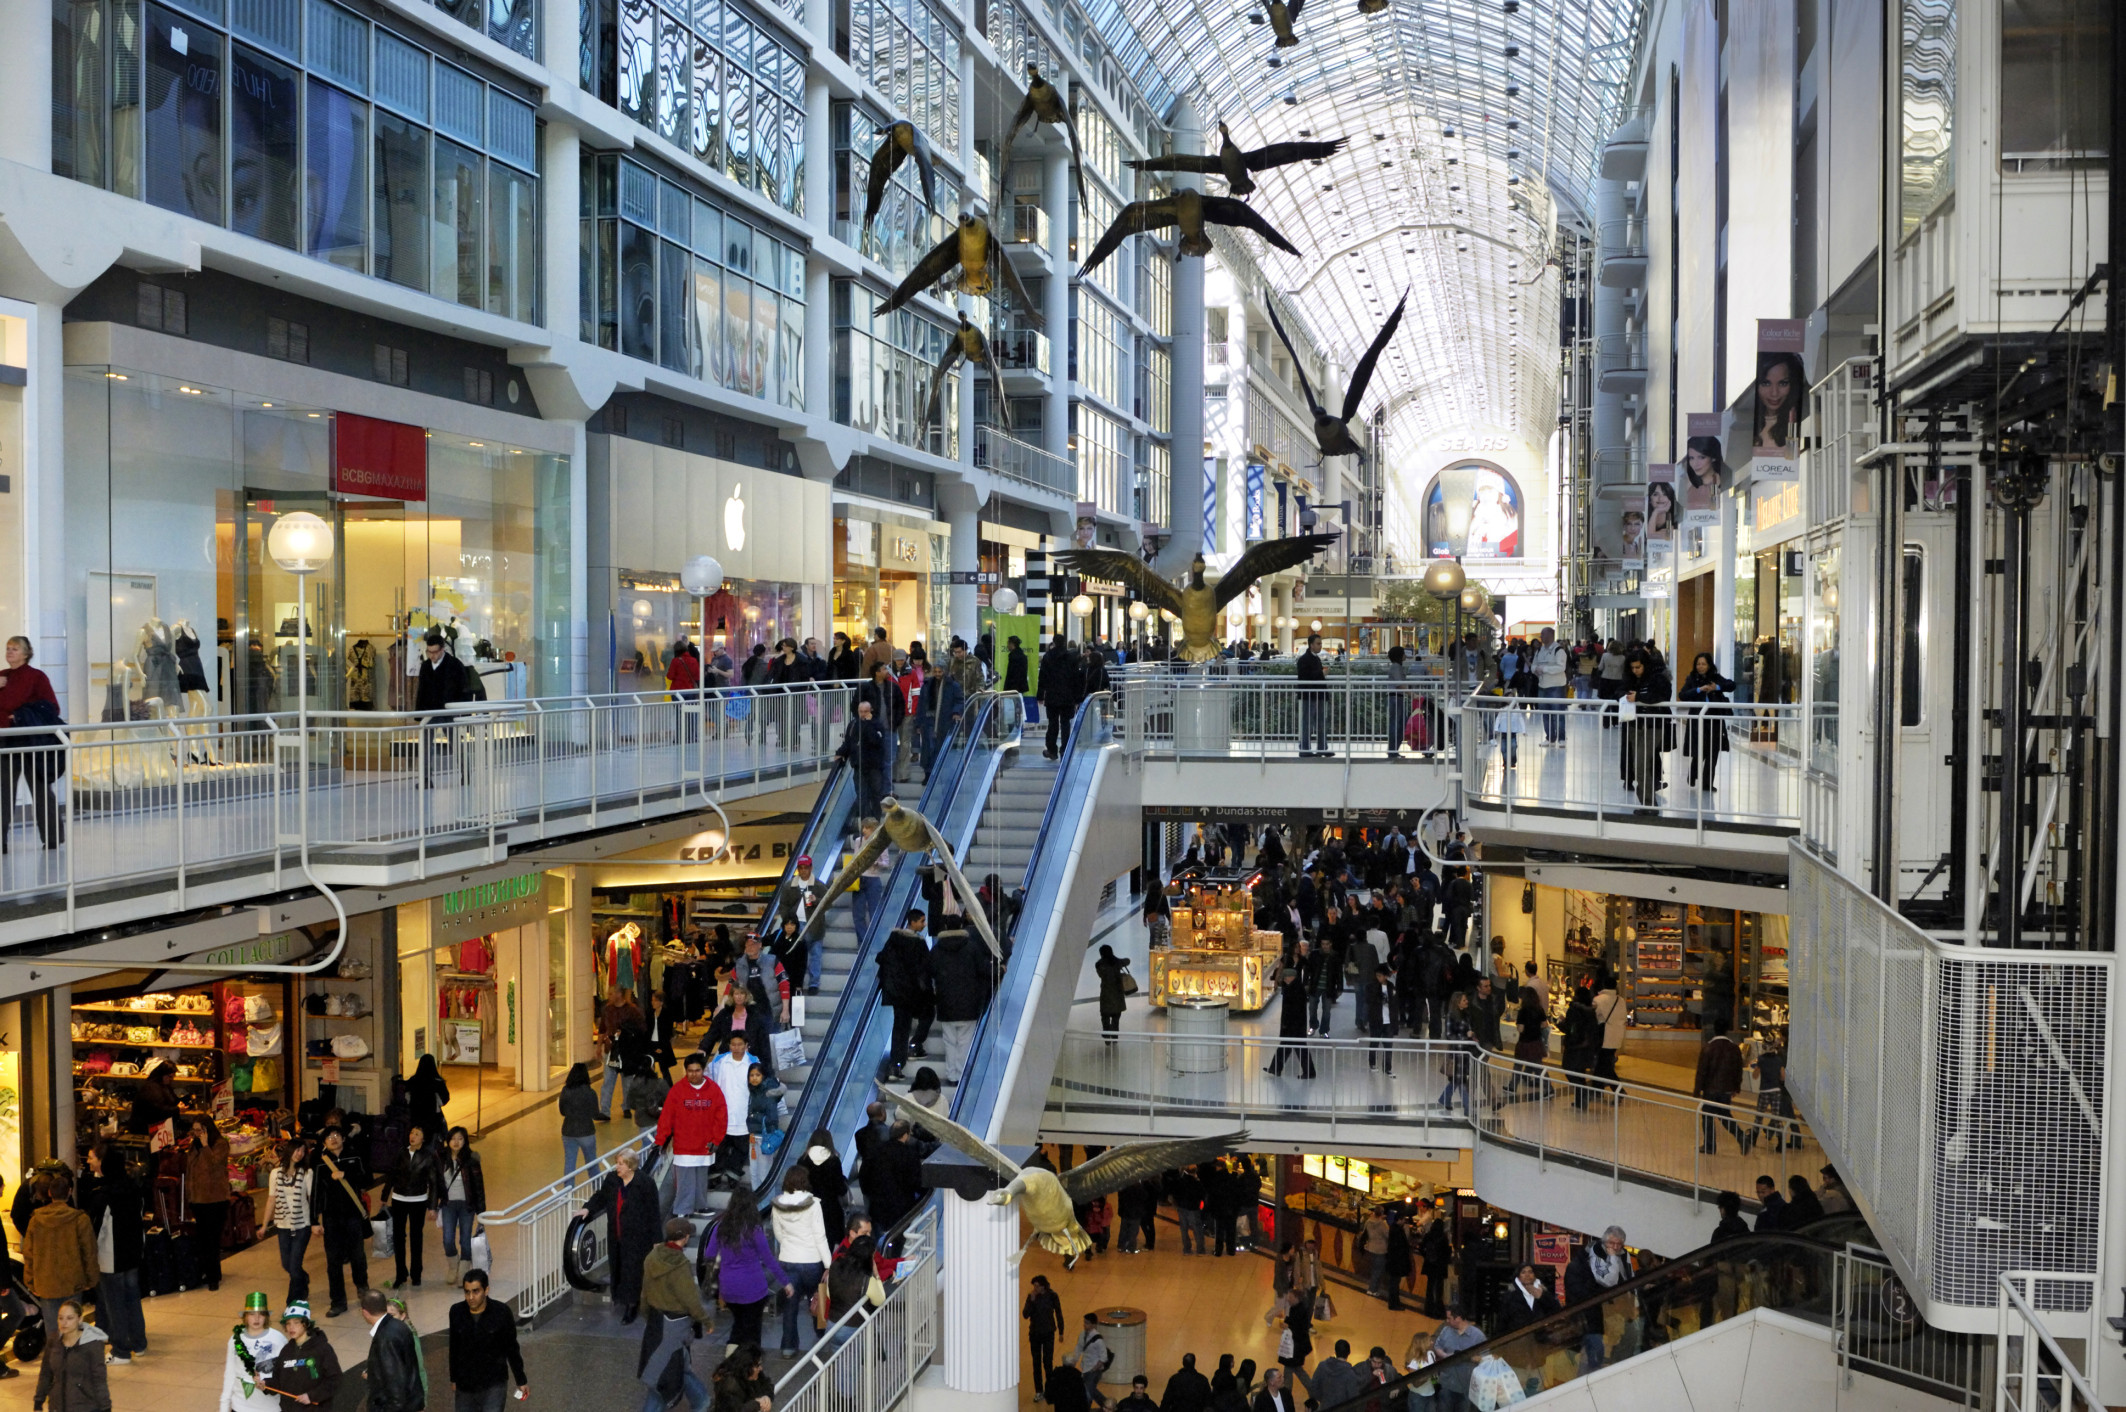 Canadian Stores Canada 39s Most Profitable Shopping Malls According To